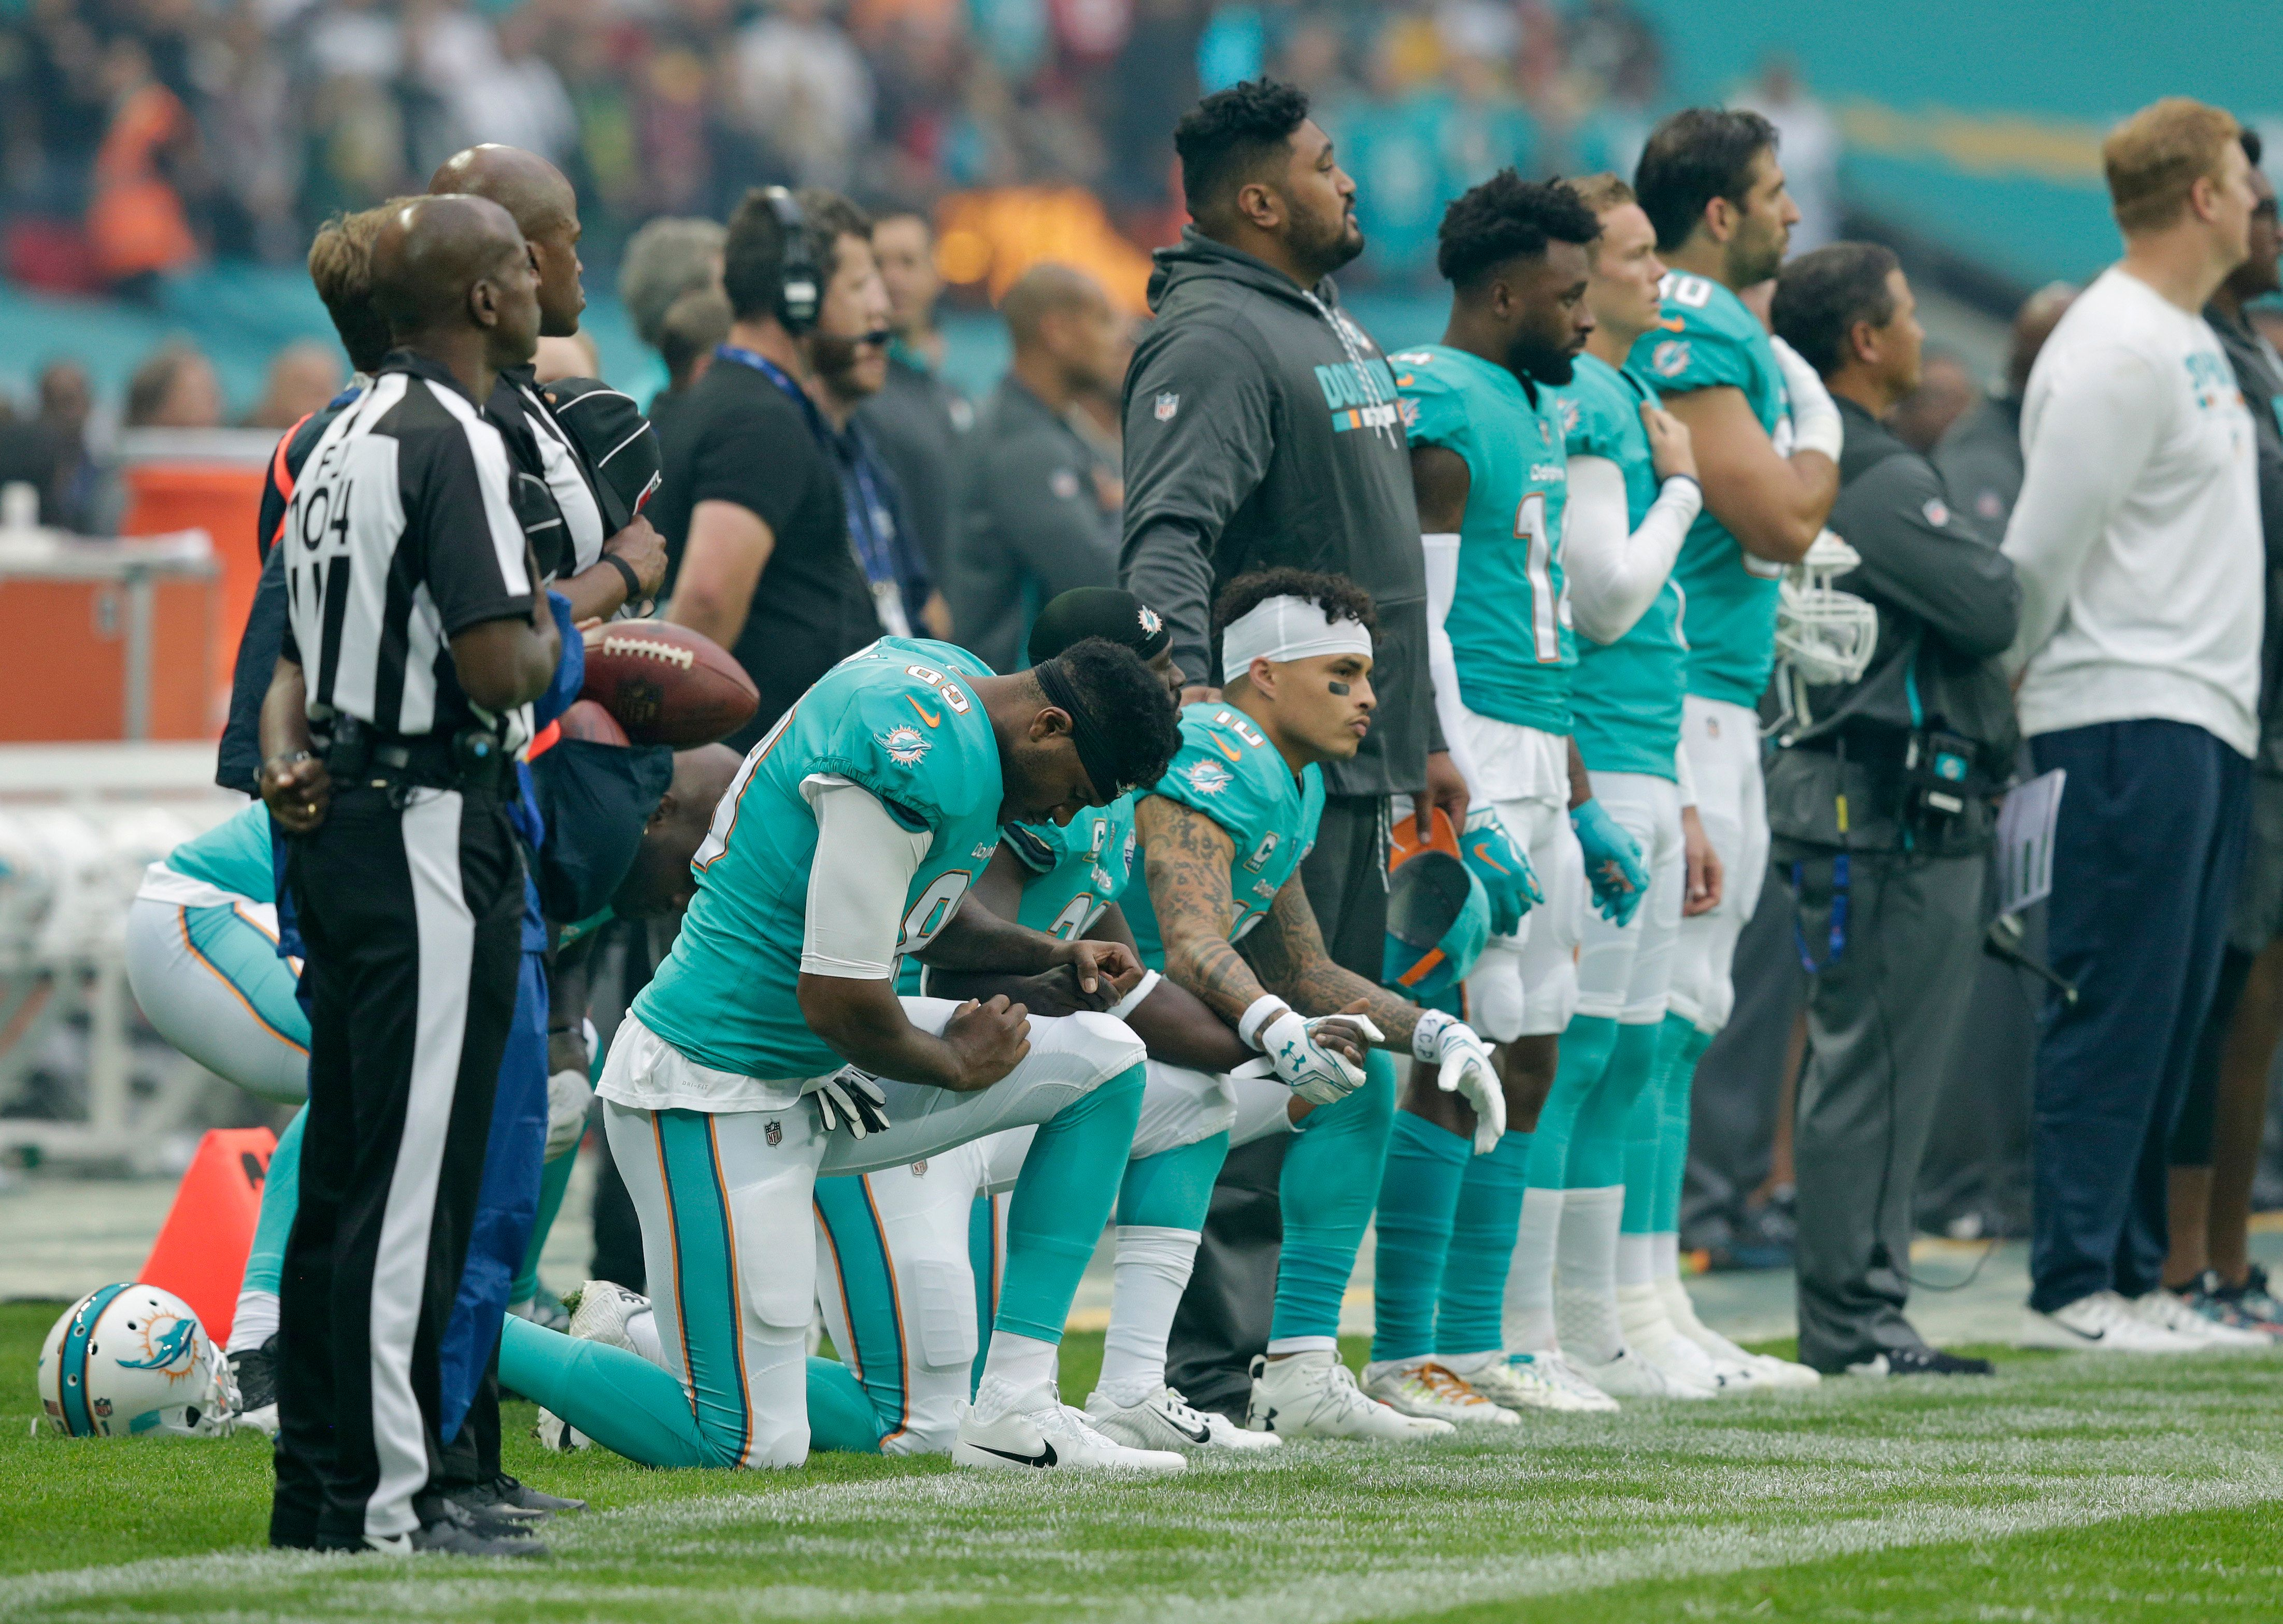 LONDON, ENGLAND - OCTOBER 01: Miami Dolphins players kneel down during the national anthem before the NFL game between the Miami Dolphins and the New Orleans Saints at Wembley Stadium on October 1, 2017 in London, England. (Photo by Henry Browne/Getty Images)